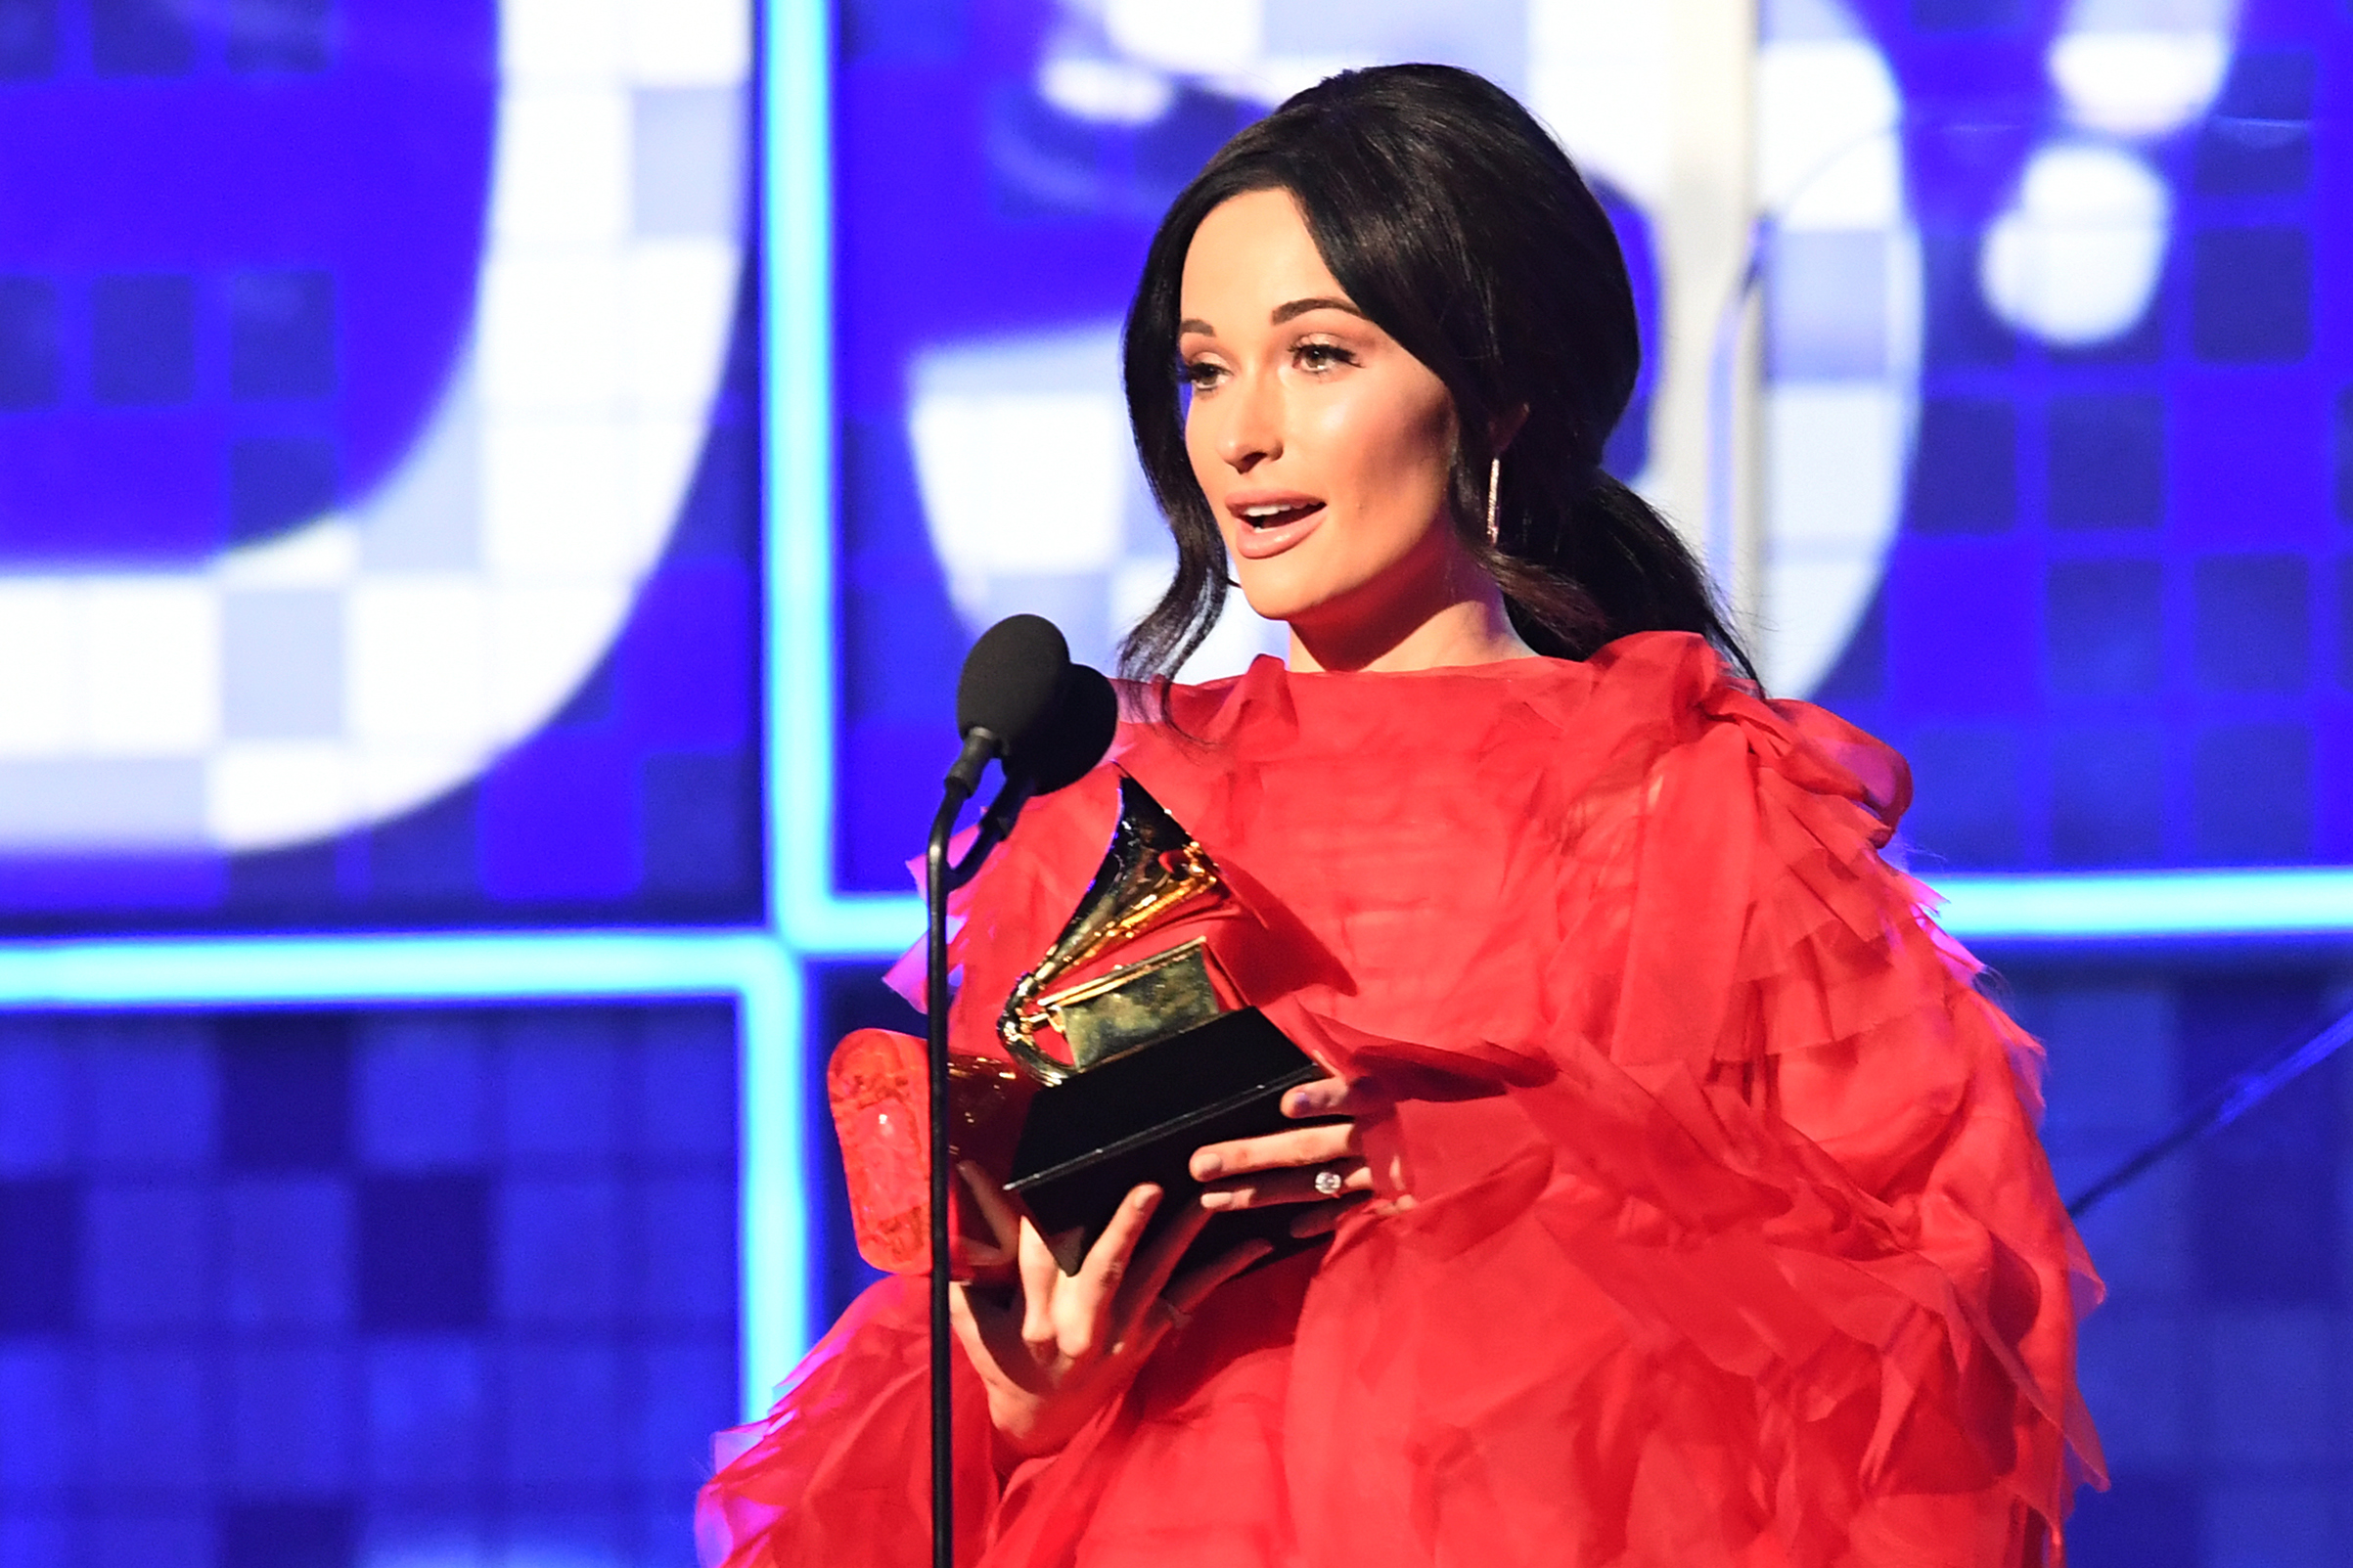 Kacey Musgraves accepts the award for Album Of The Year for  Golden Hour  onstage during the 61st Annual Grammy Awards on Feb. 10, 2019, in Los Angeles.